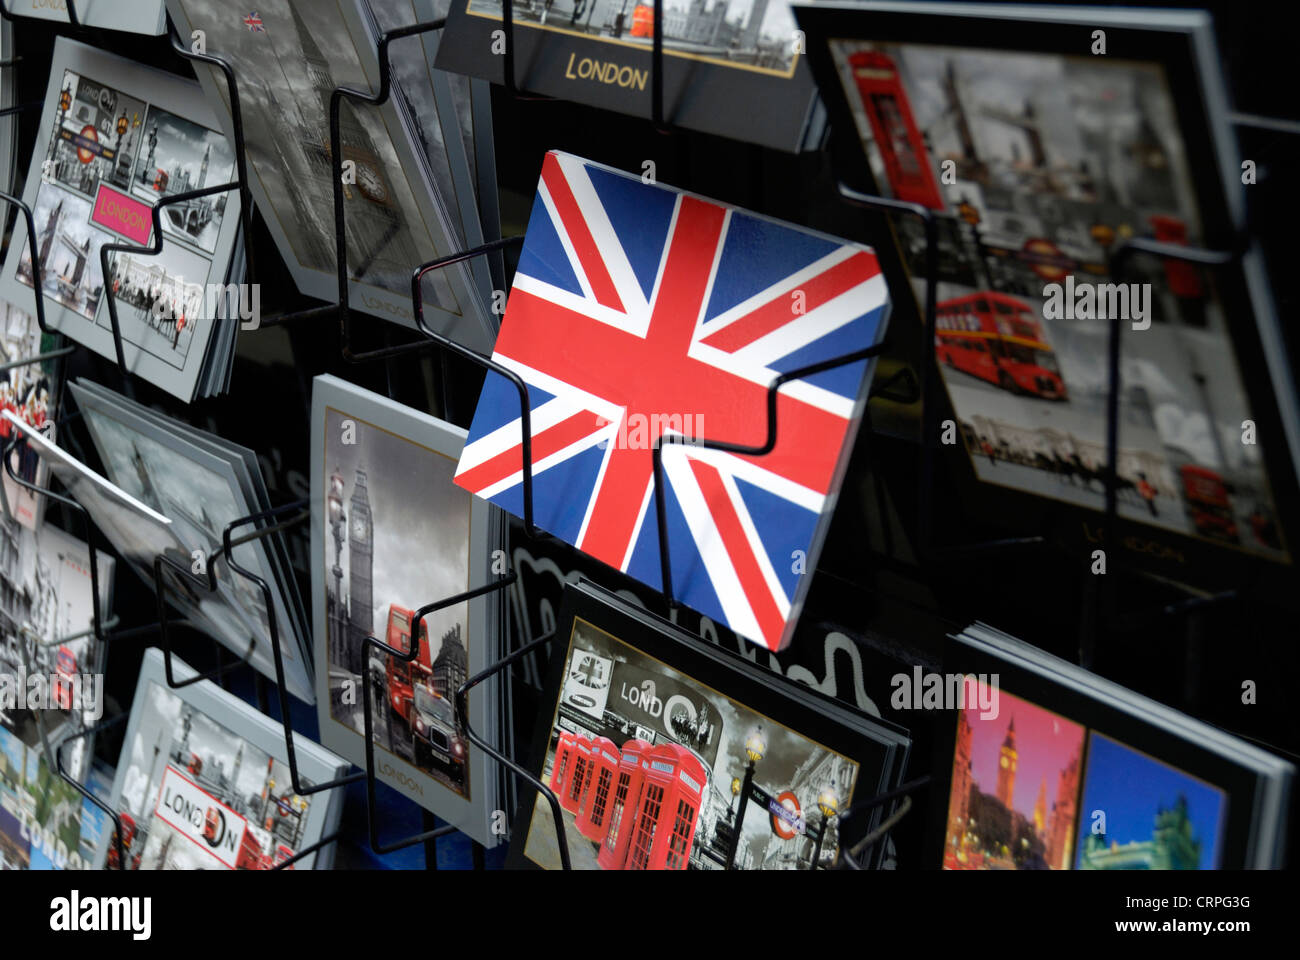 Postcards featuring London icons and a Union Flag on display in a rack. - Stock Image